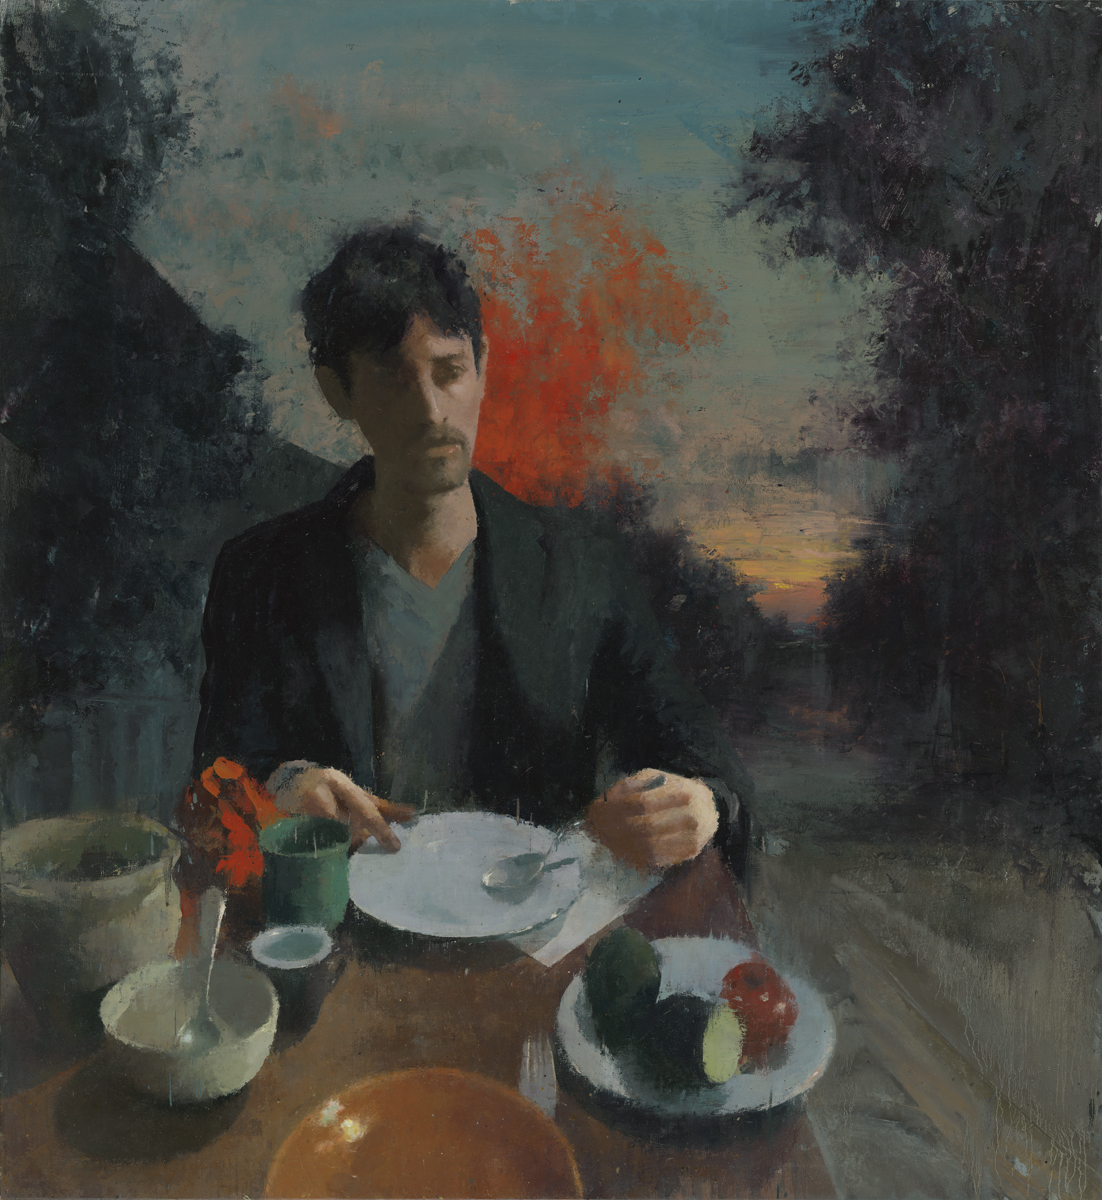 Self portrait at a table